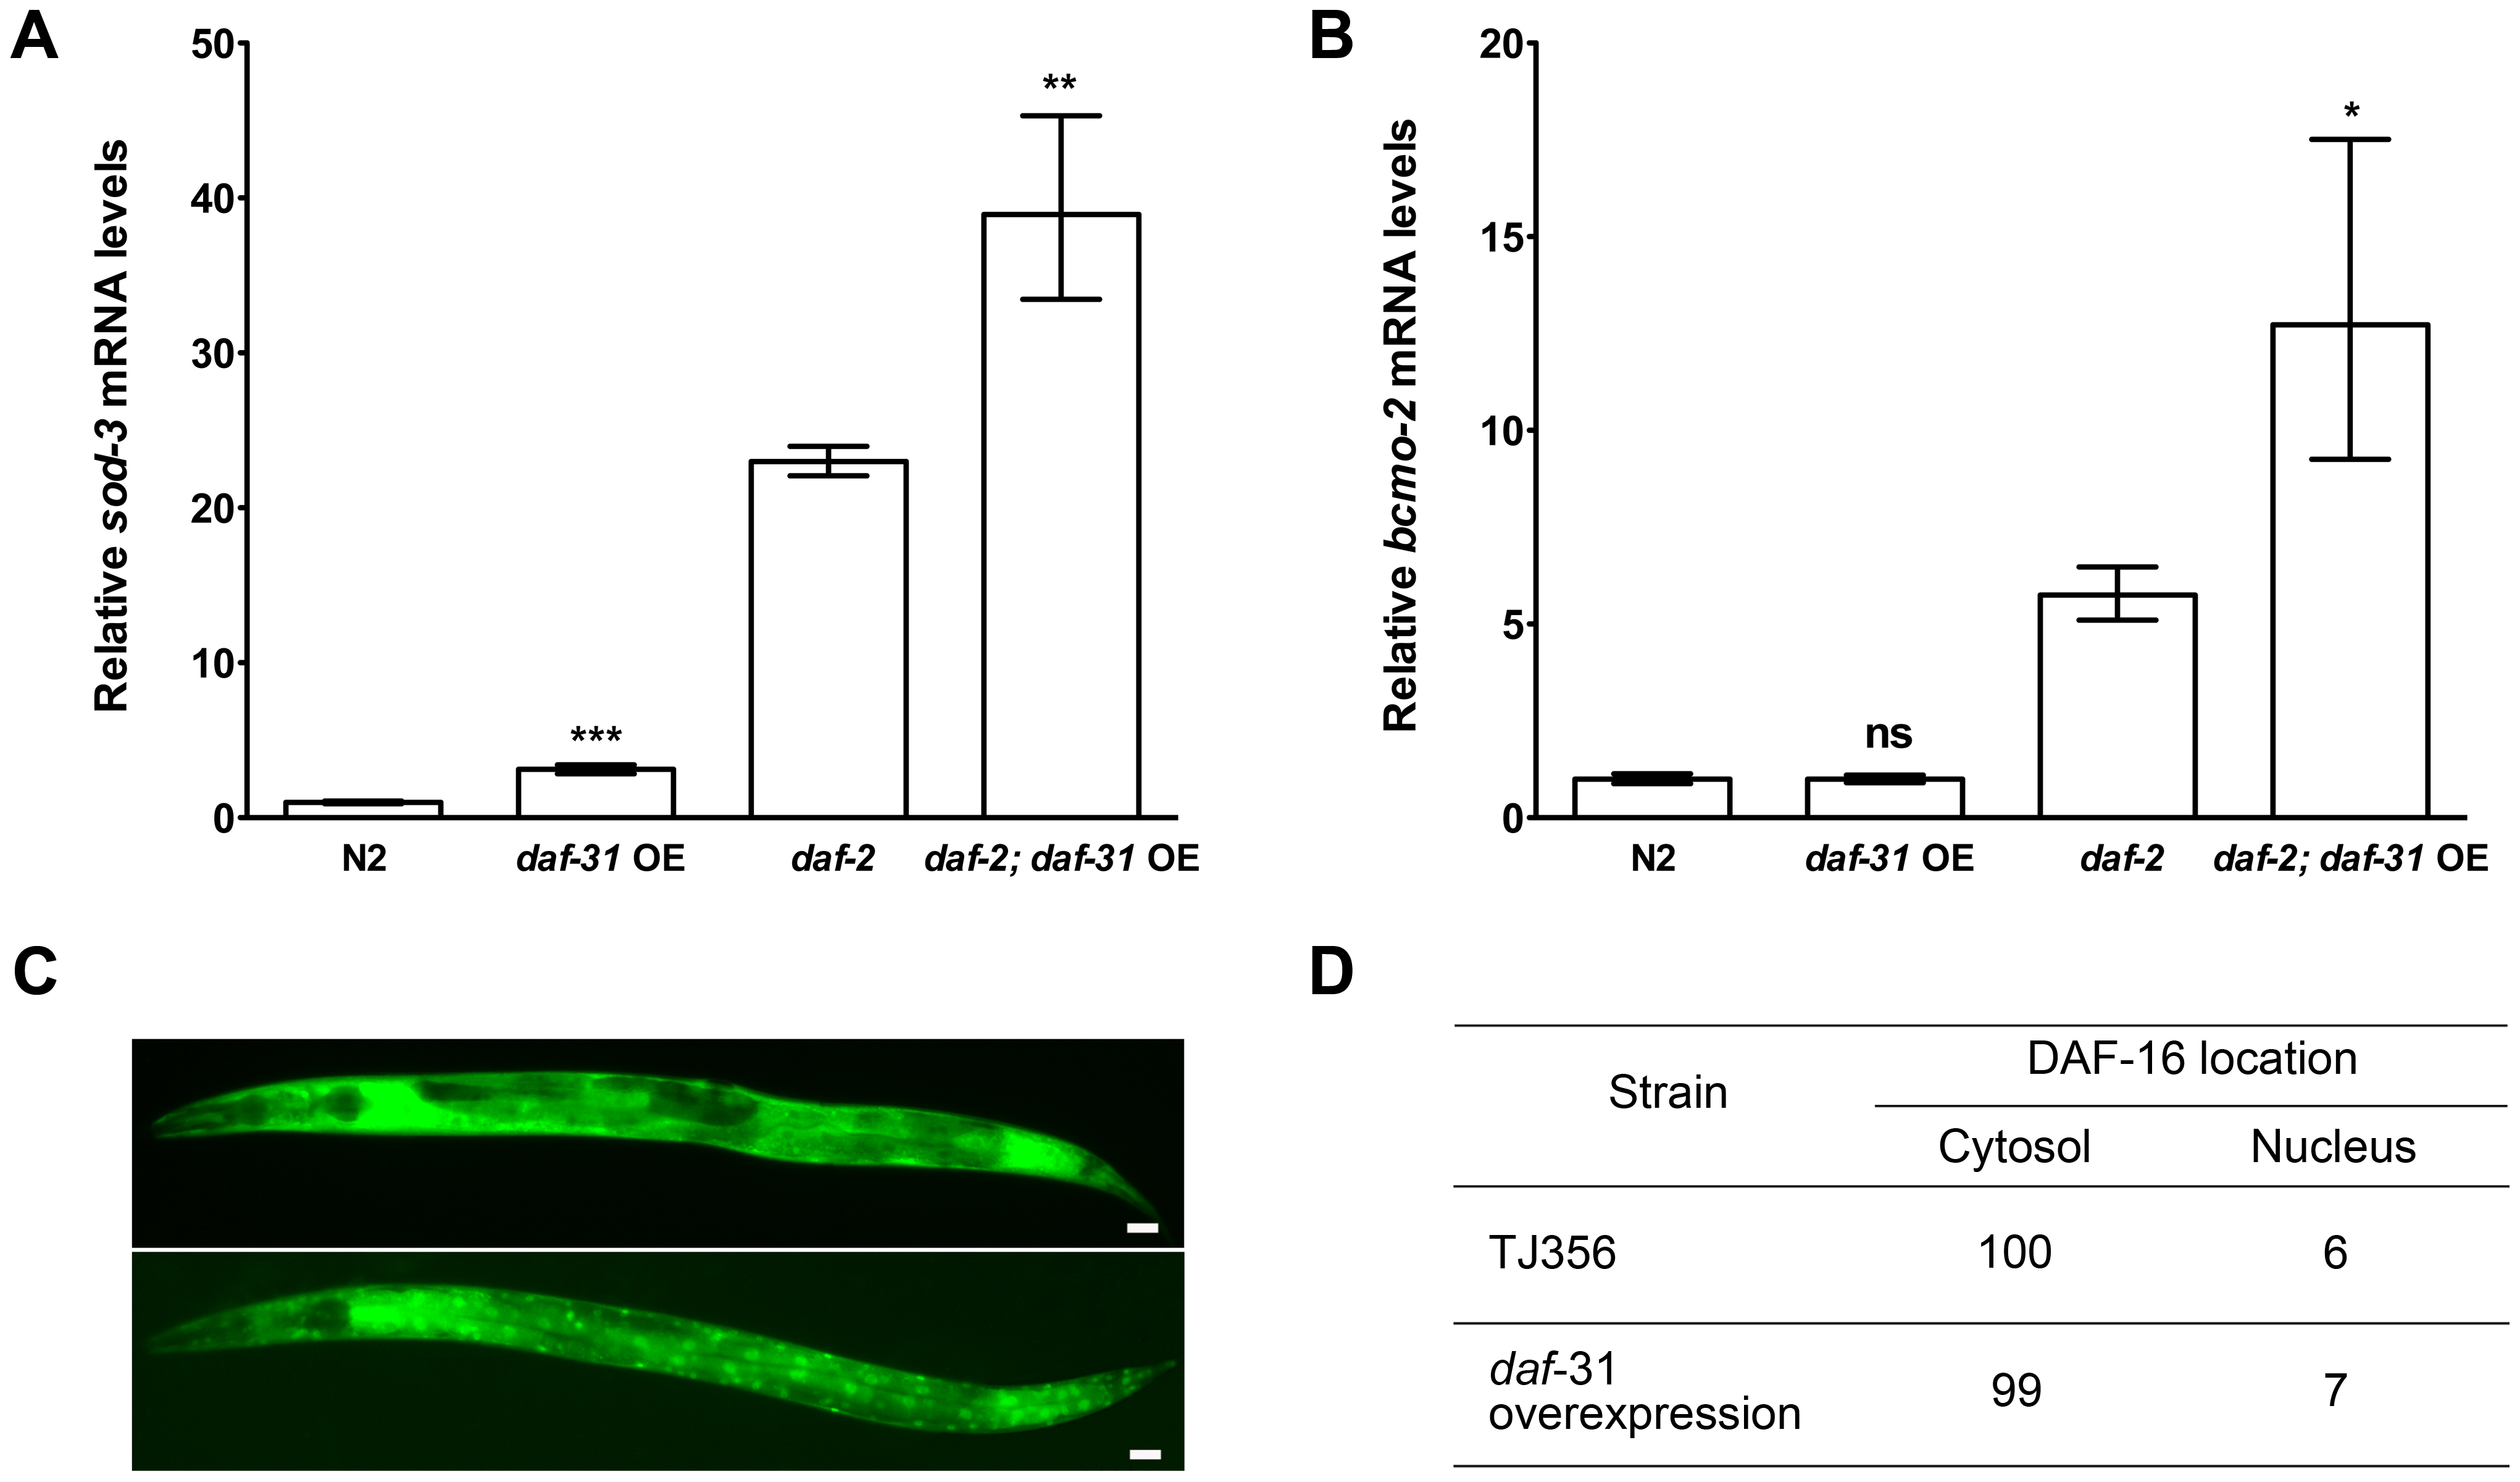 <i>daf-31</i> overexpression stimulates the transcriptional activity of DAF-16 without influencing the subcellular localization of DAF-16.